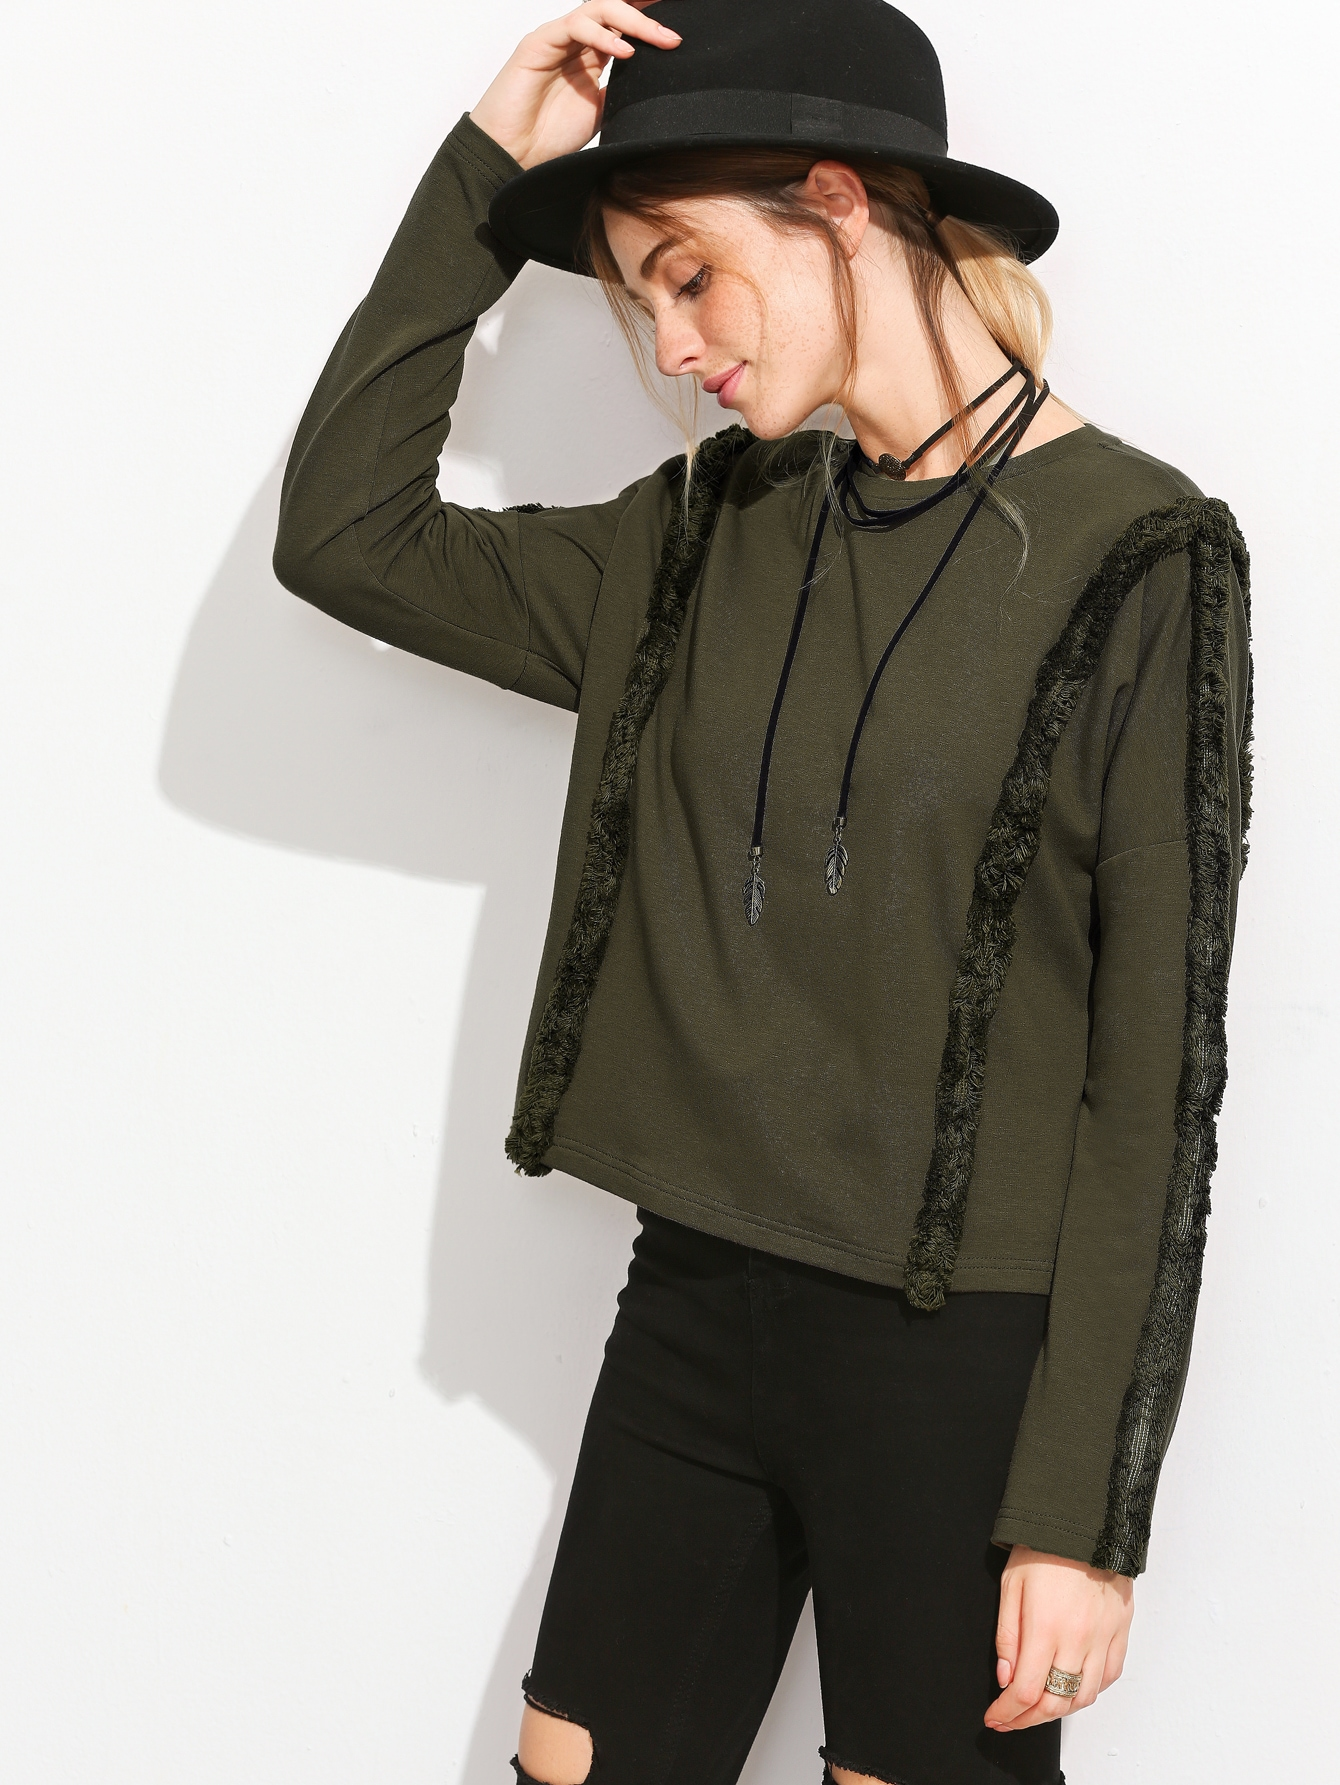 Olive Green Frayed Trim Drop Shoulder T-shirtOlive Green Frayed Trim Drop Shoulder T-shirt<br><br>color: Green<br>size: L,M,S,XS